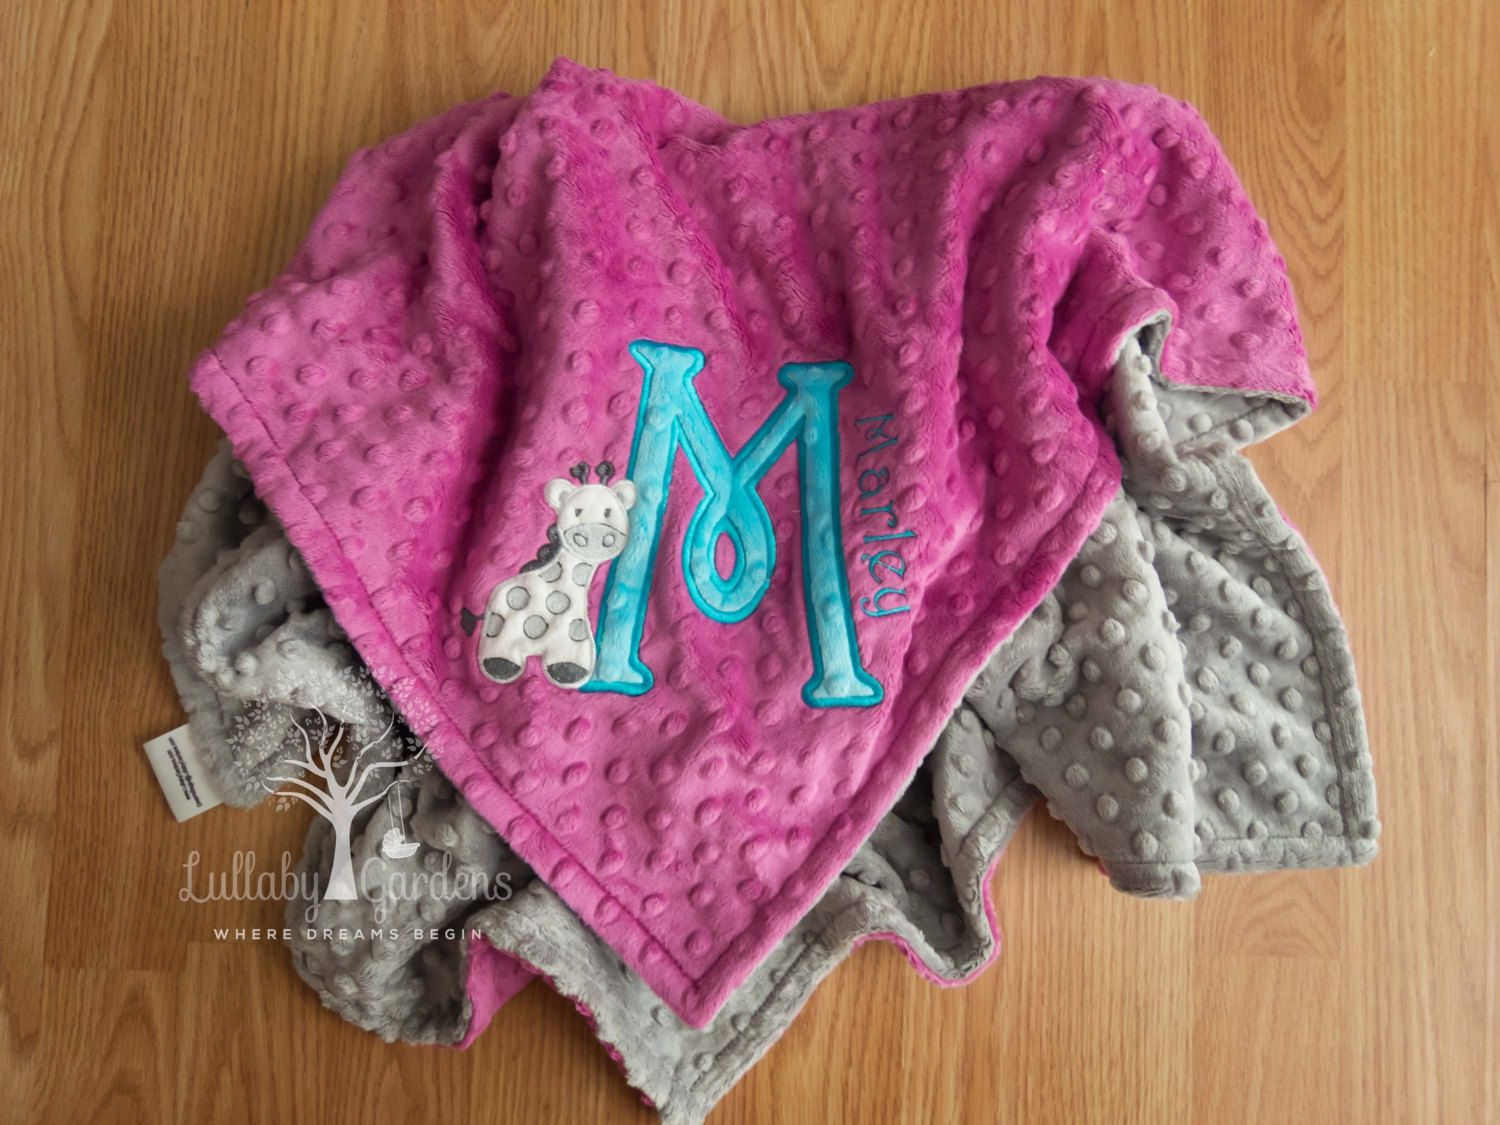 Personalized baby gifts minky baby blanket giraffe minky blanket personalized baby gifts minky baby blanket giraffe minky blanket appliqued giraffe minky blanket negle Gallery